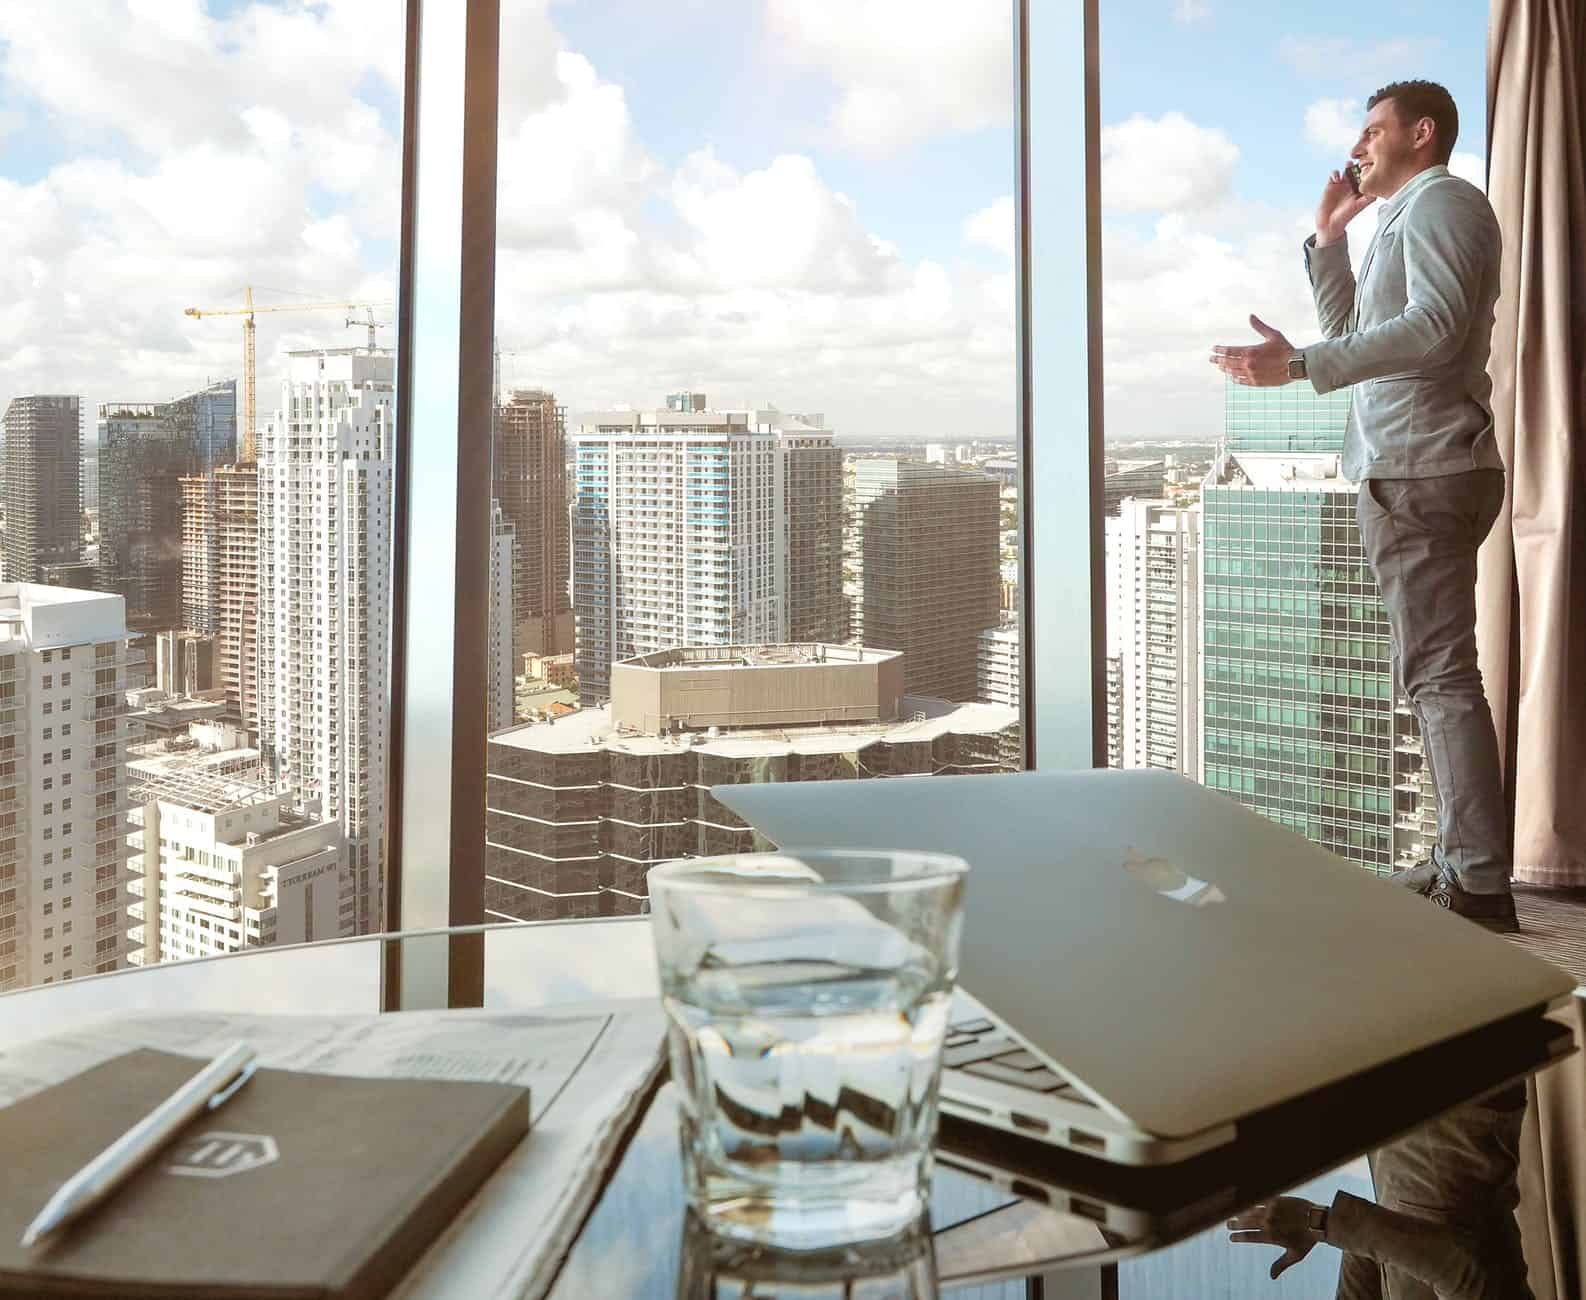 How a Simple Career Change Can Improve Your Life